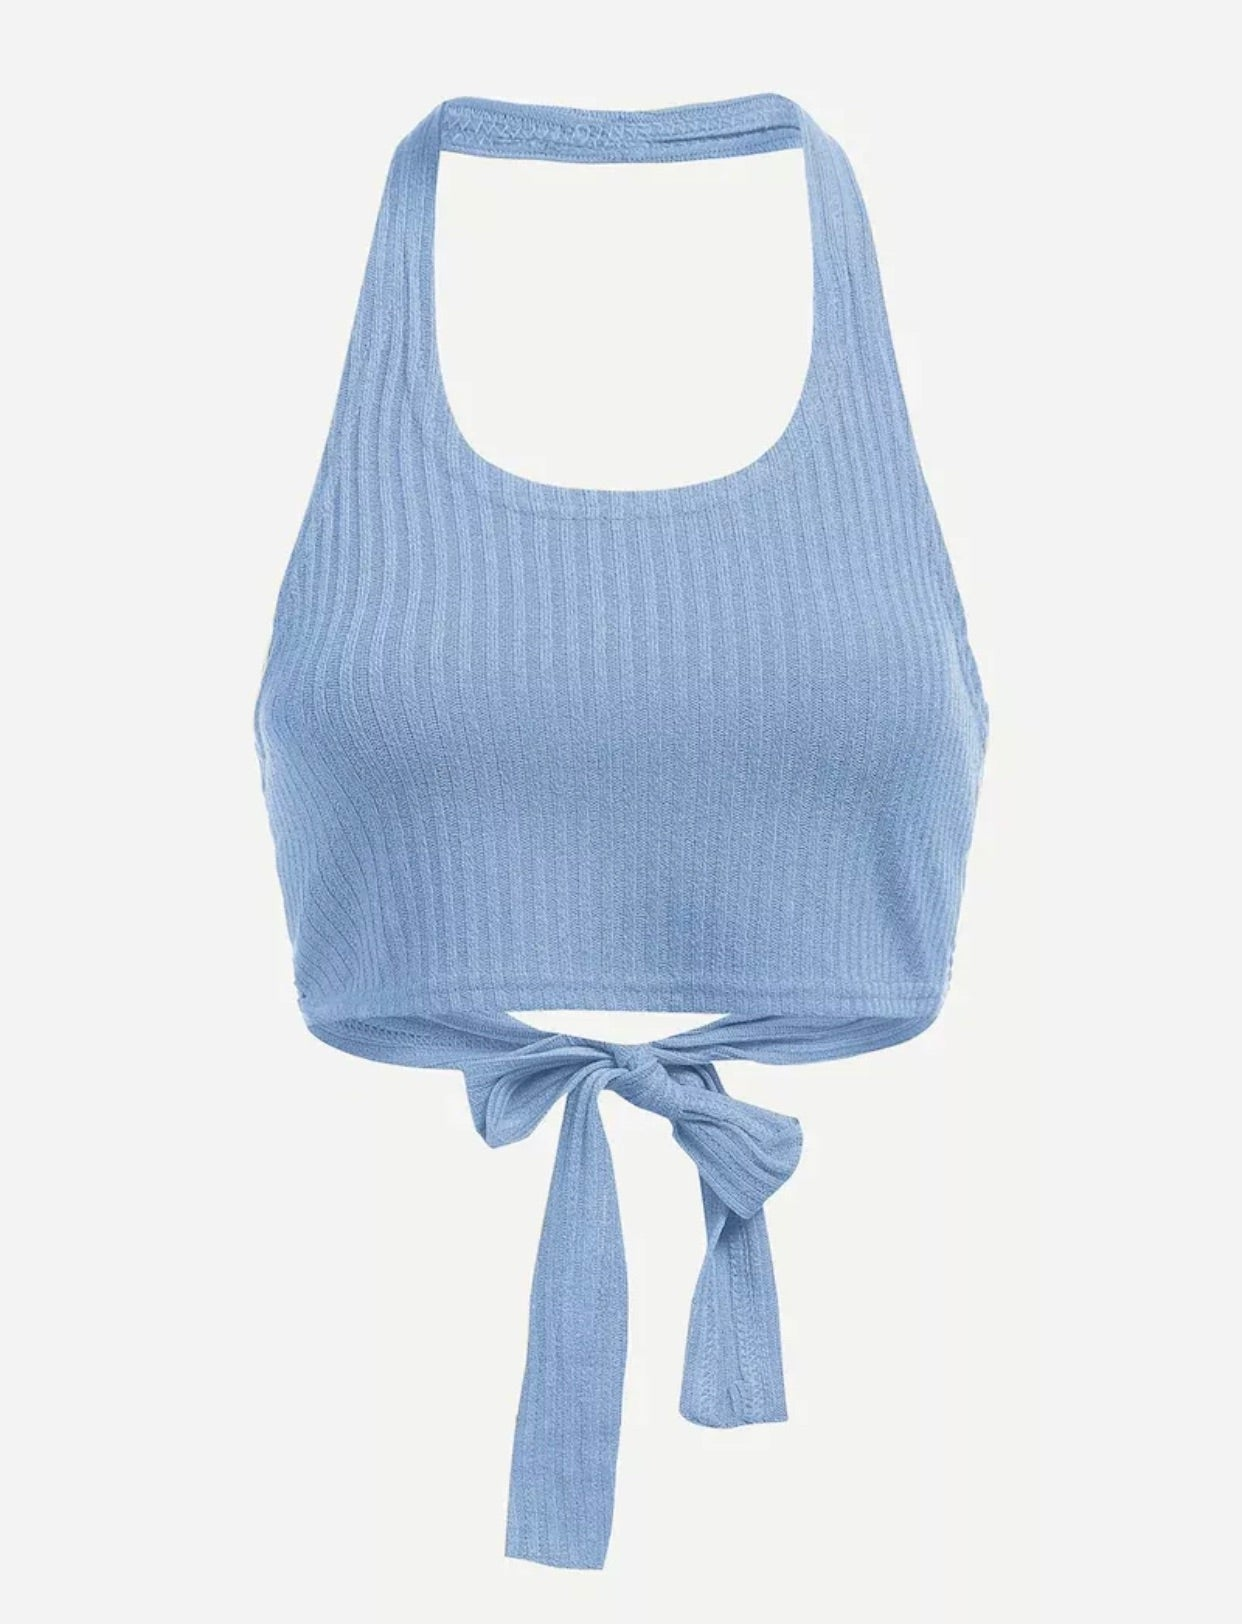 Barely Here Halter Top (Blue)